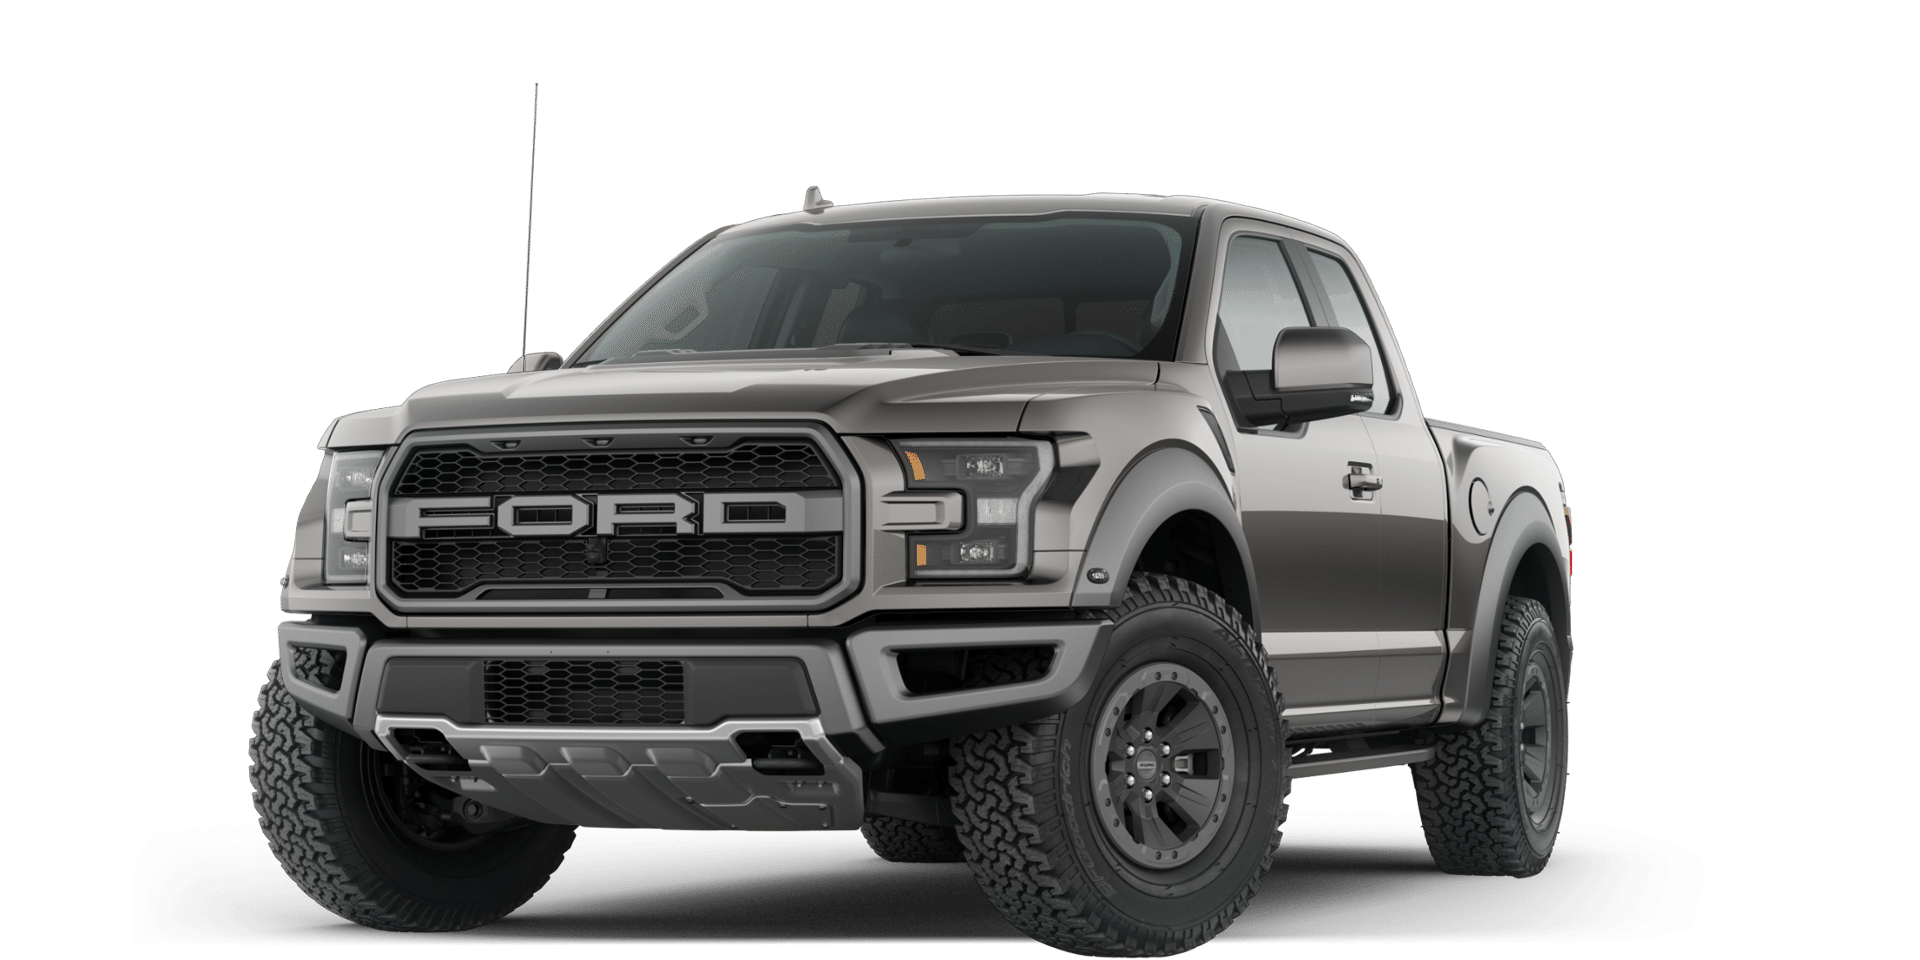 2018 Ford F 150 Build Price Ford F150 Ford Raptor Ford Trucks